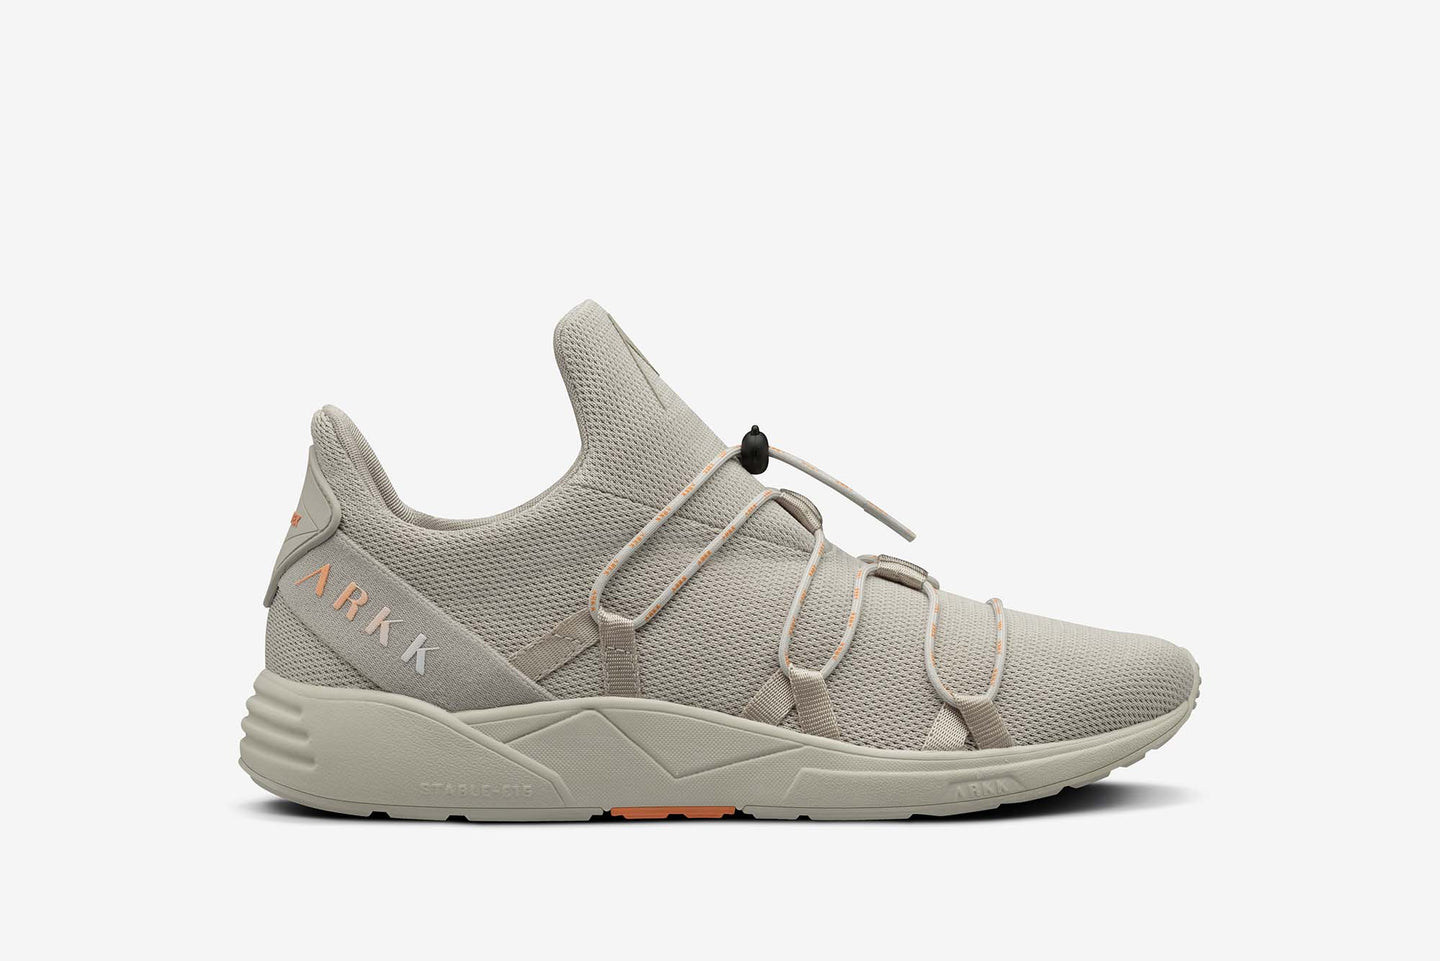 ARKK Collection Scorpitex Mesh S-E15 Silver Gray Light Rust-WOMEN Scorpitex Silver Gray